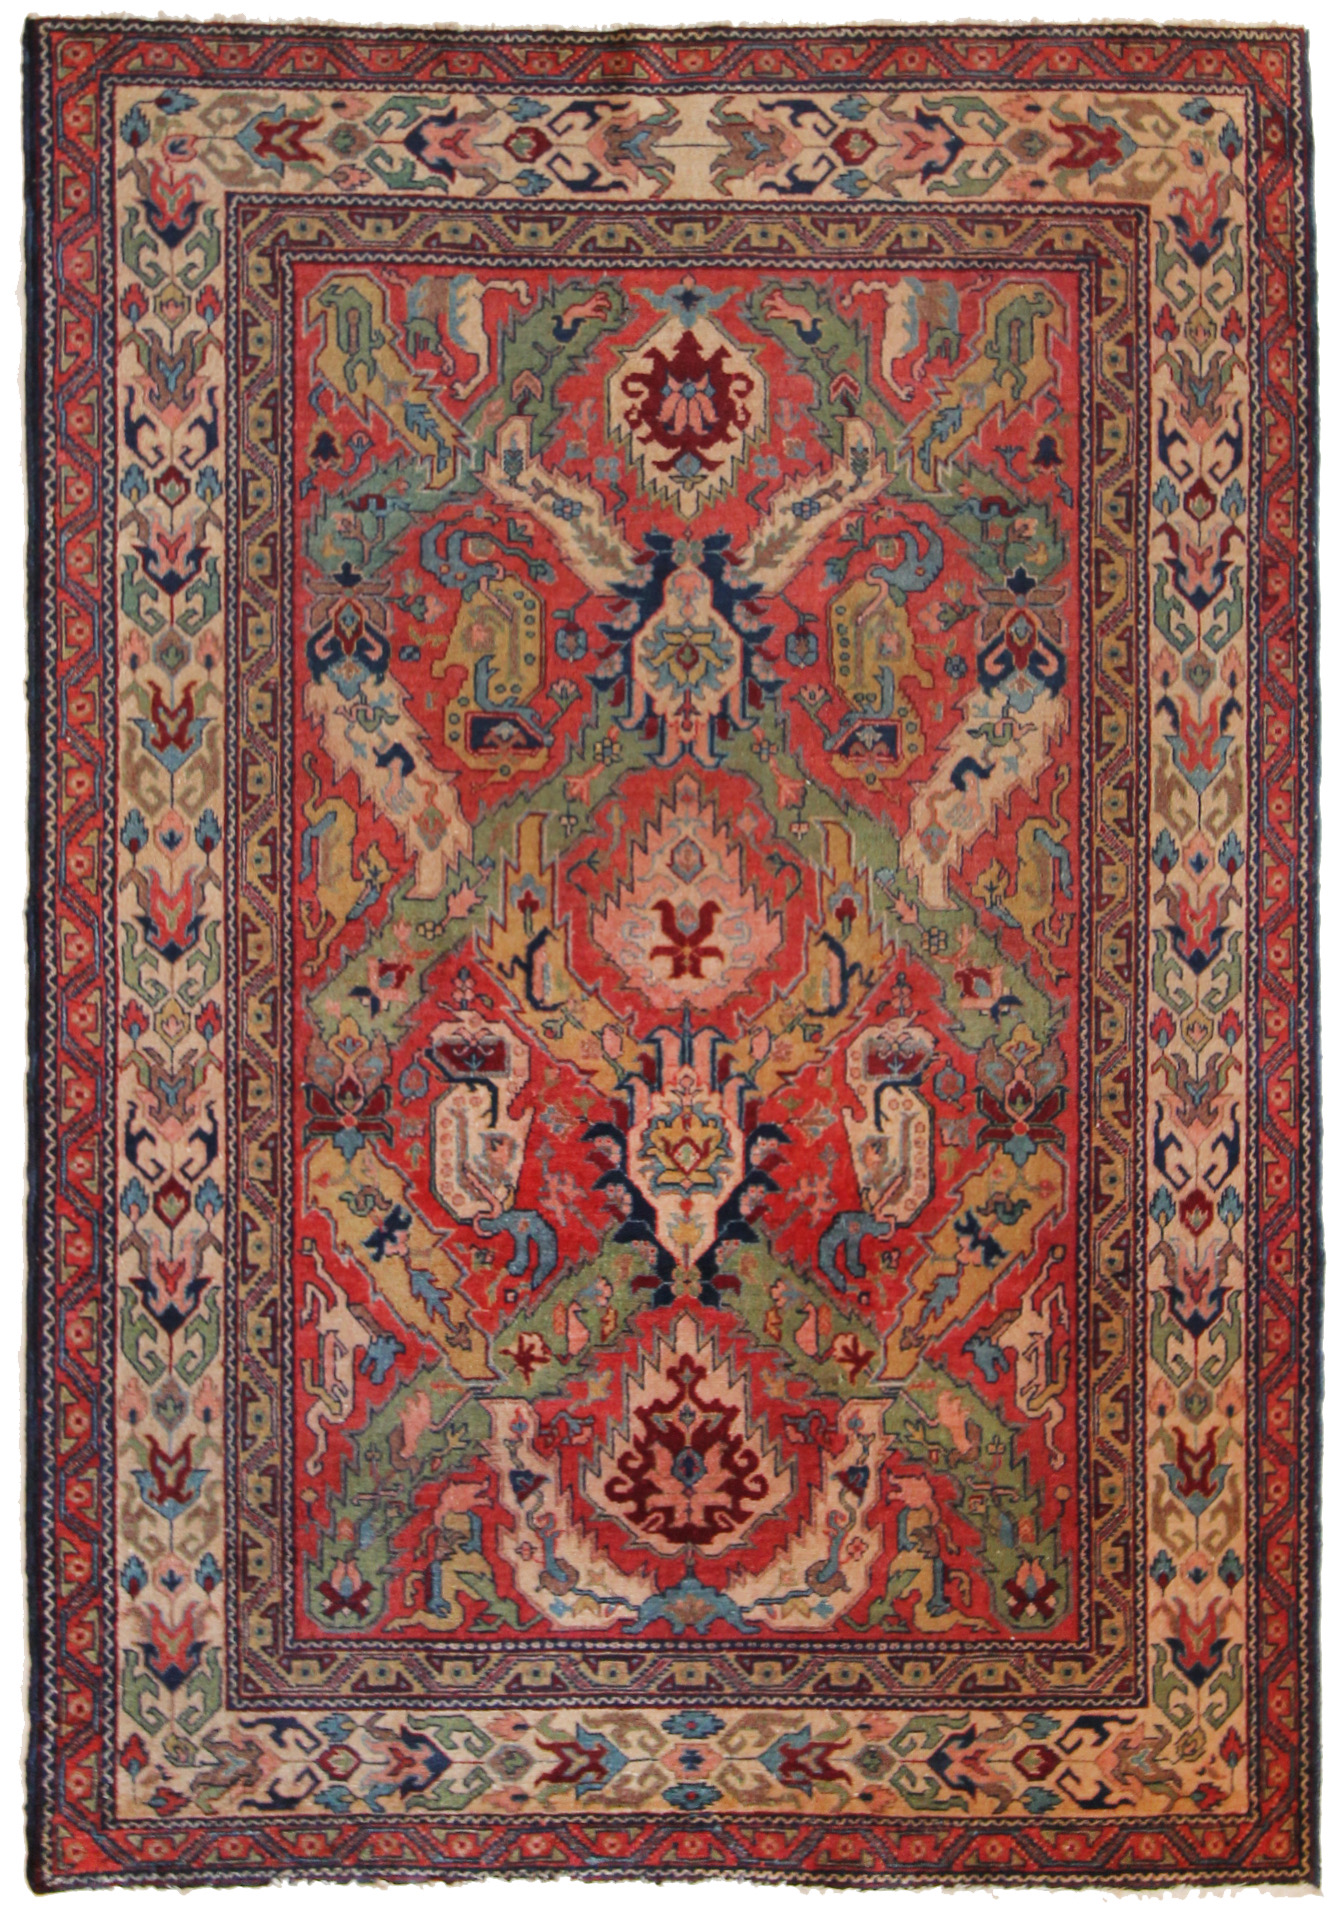 178 Armenian Dragon Rug, circa 1920, 4'8''x6'10''